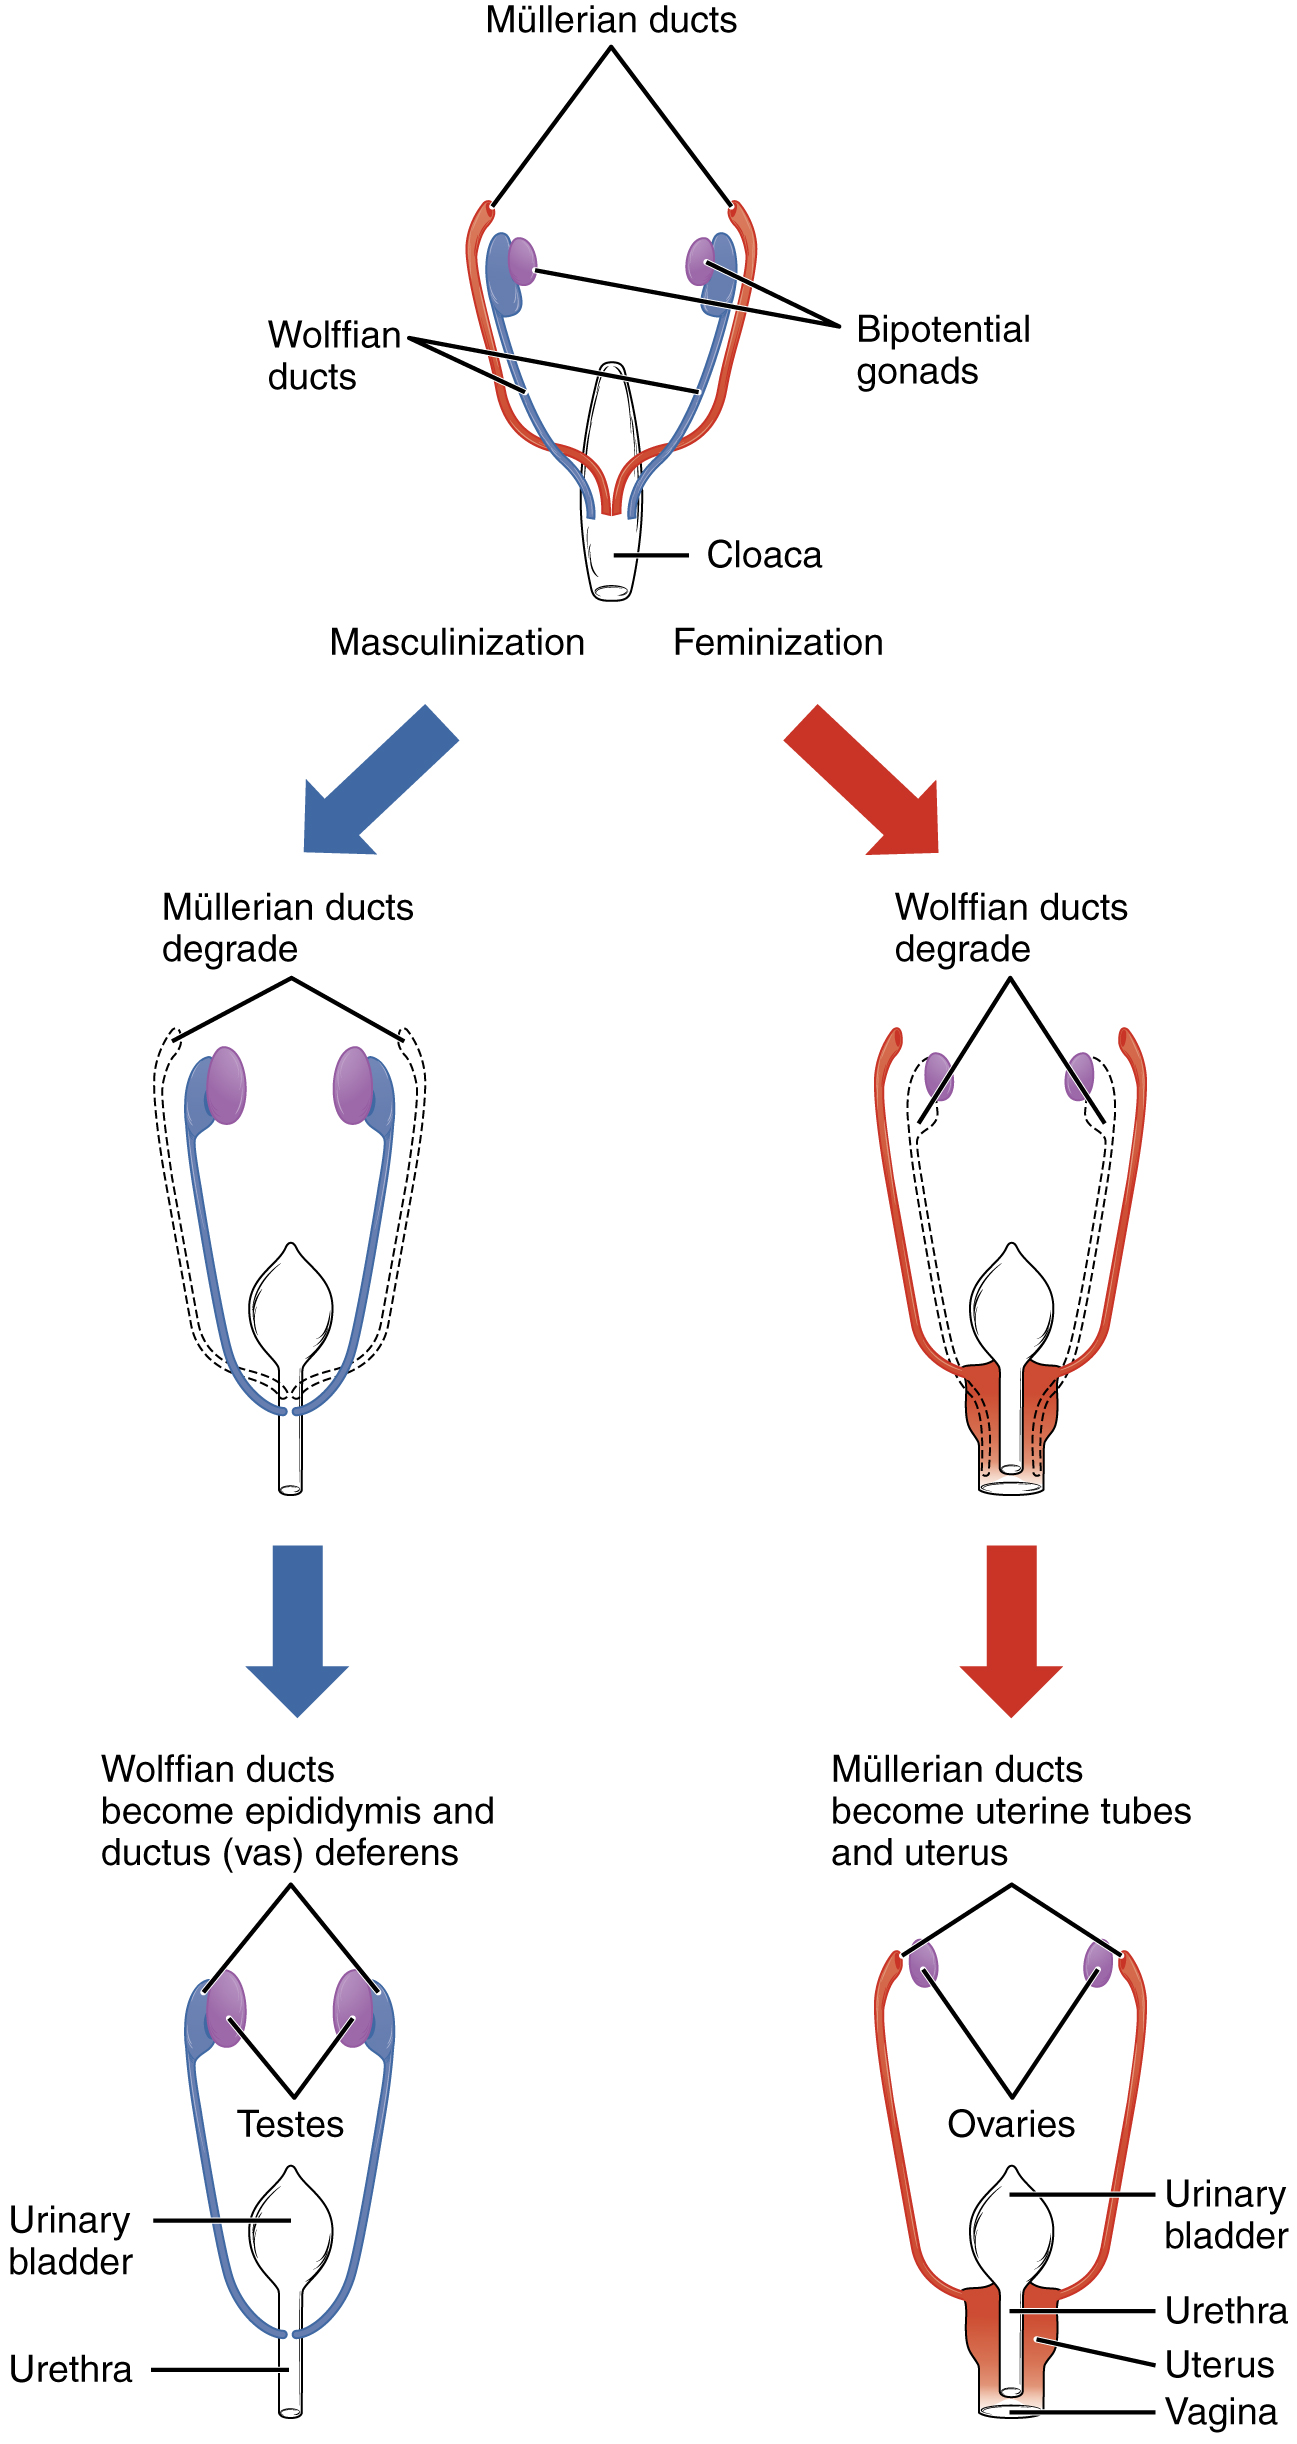 This flow chart shows how the sexual organs develop in embryos. The left side of the flow chart shows the development of male organs and the right side of the flow chart shows the development of female organs.